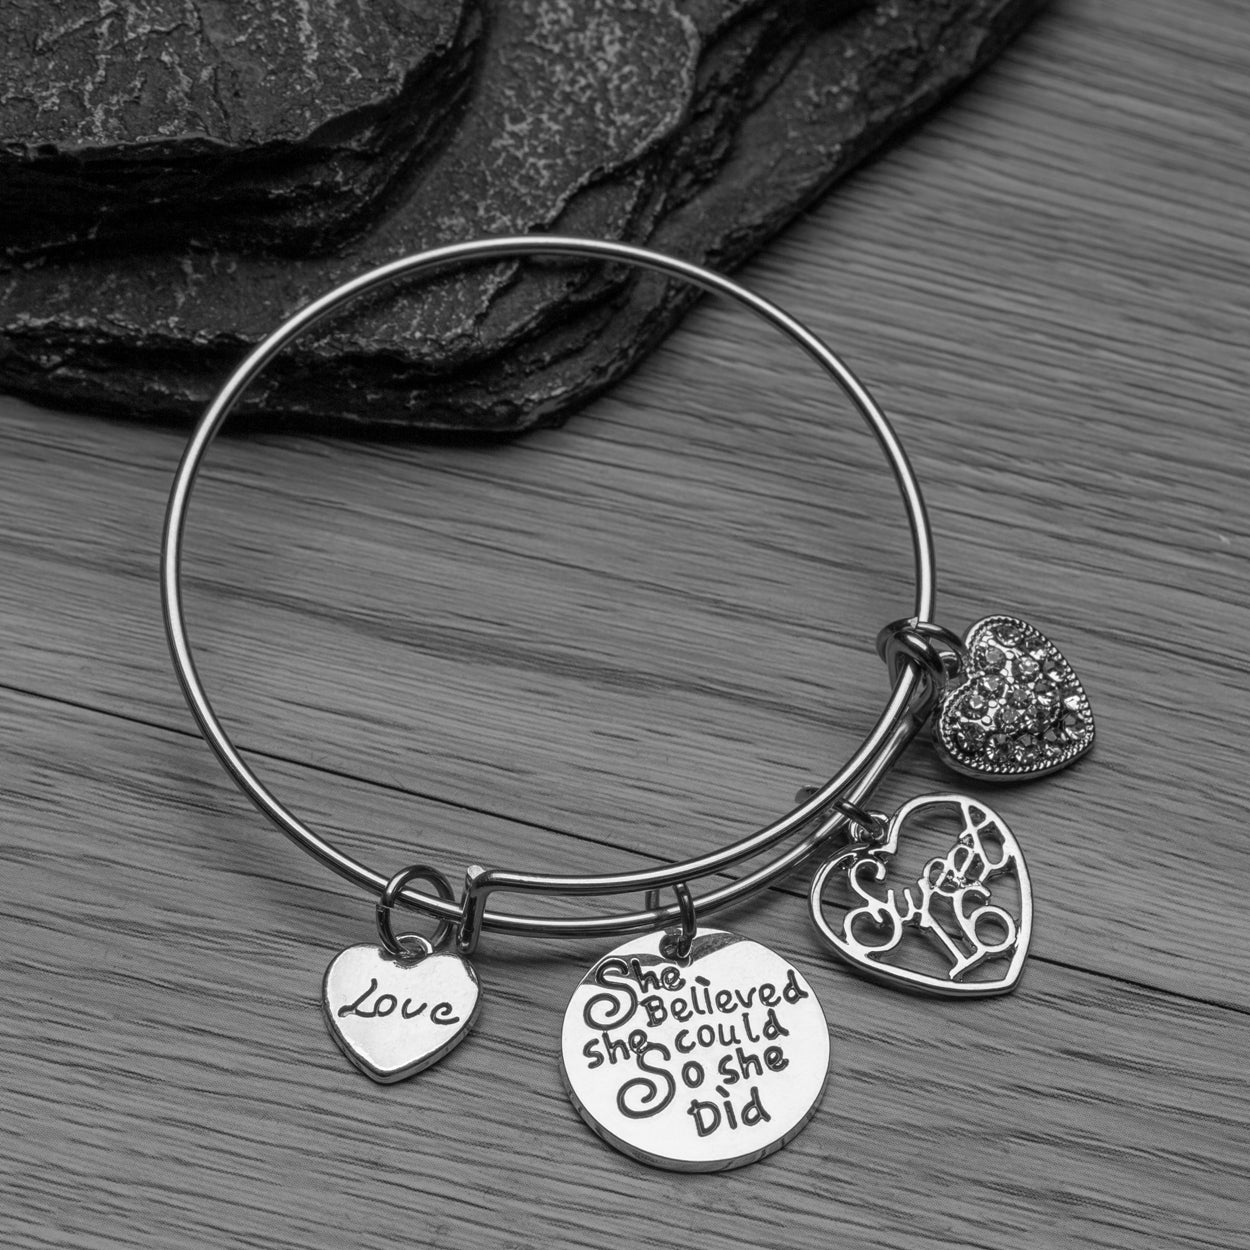 Sweet 16 Bangle Bracelet - She Believed She Could